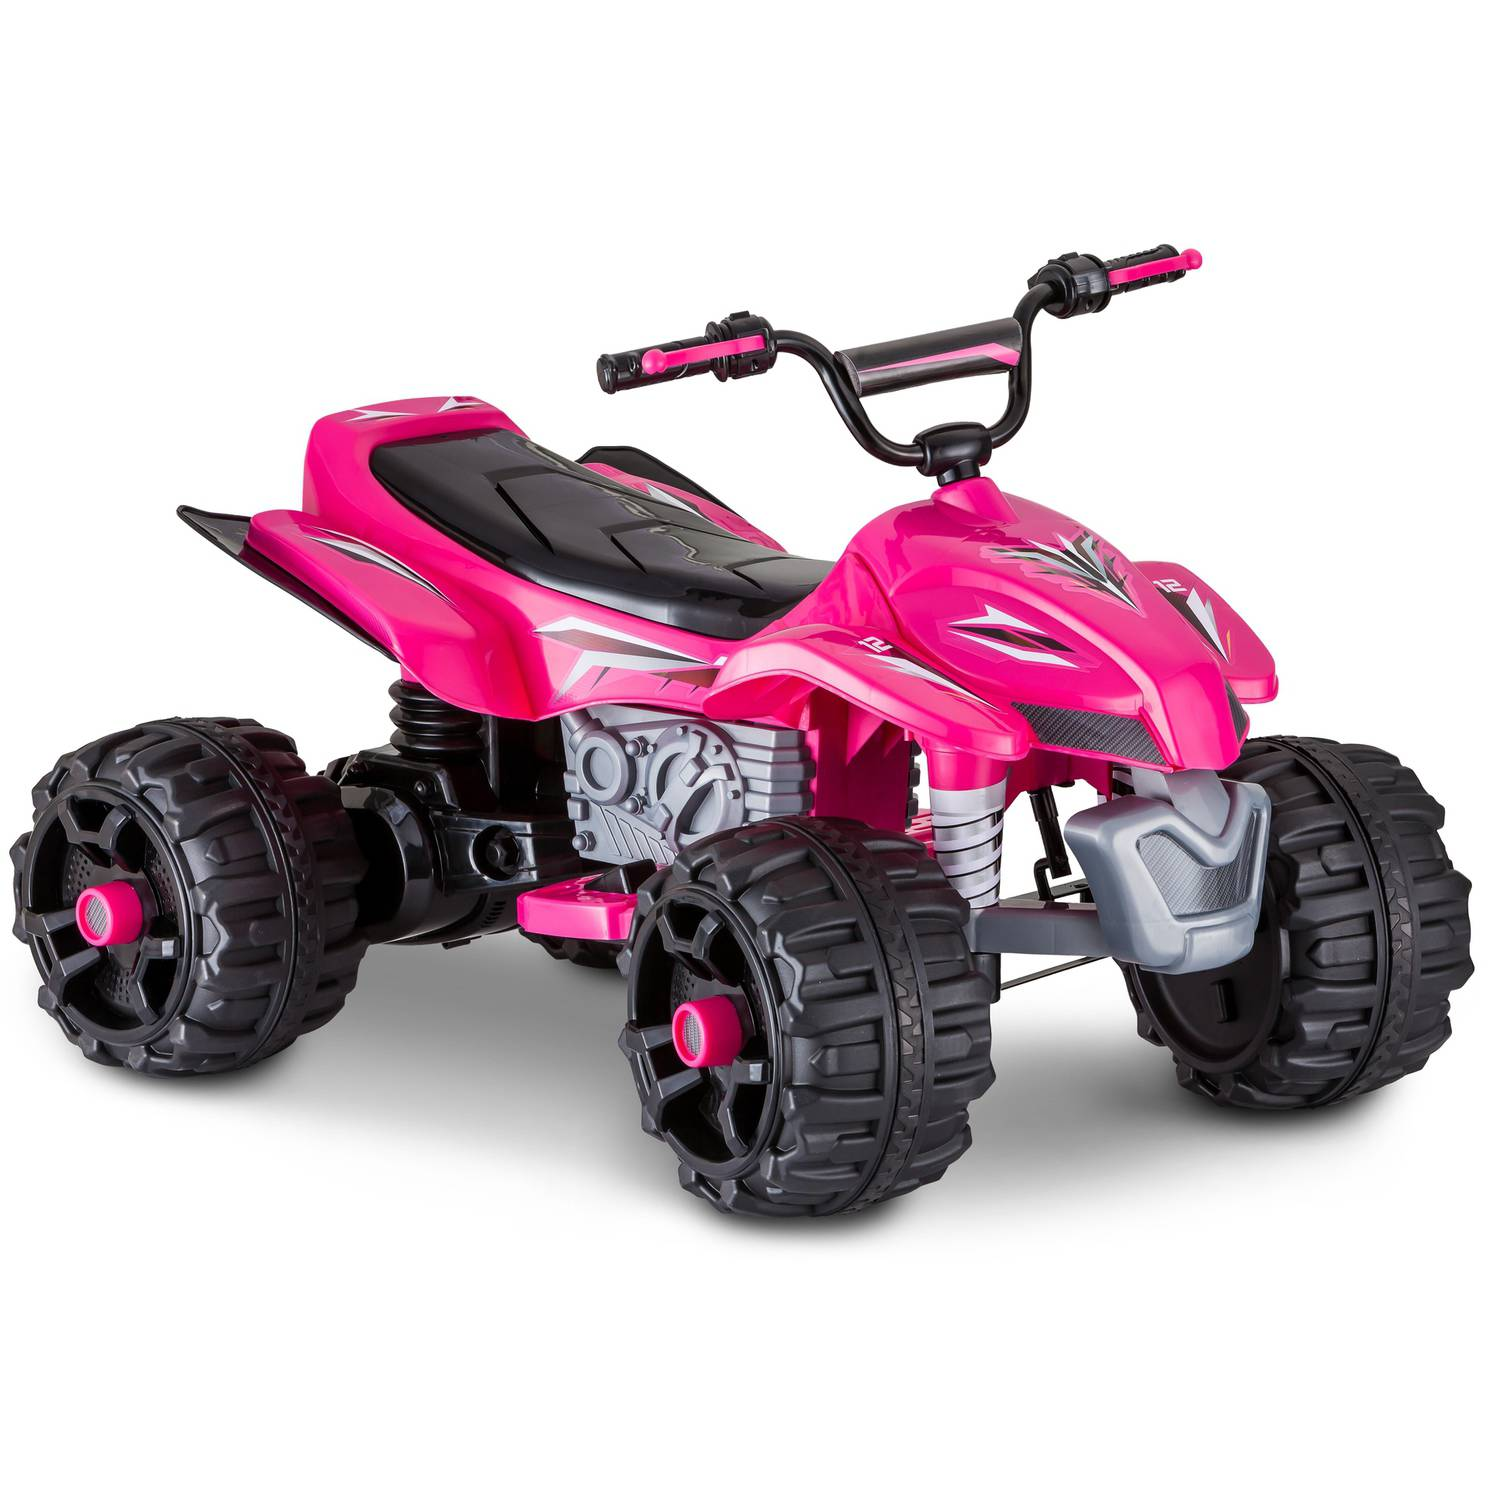 pacific cycle sport atv quad 12v battery powered ride on gamesplus. Black Bedroom Furniture Sets. Home Design Ideas